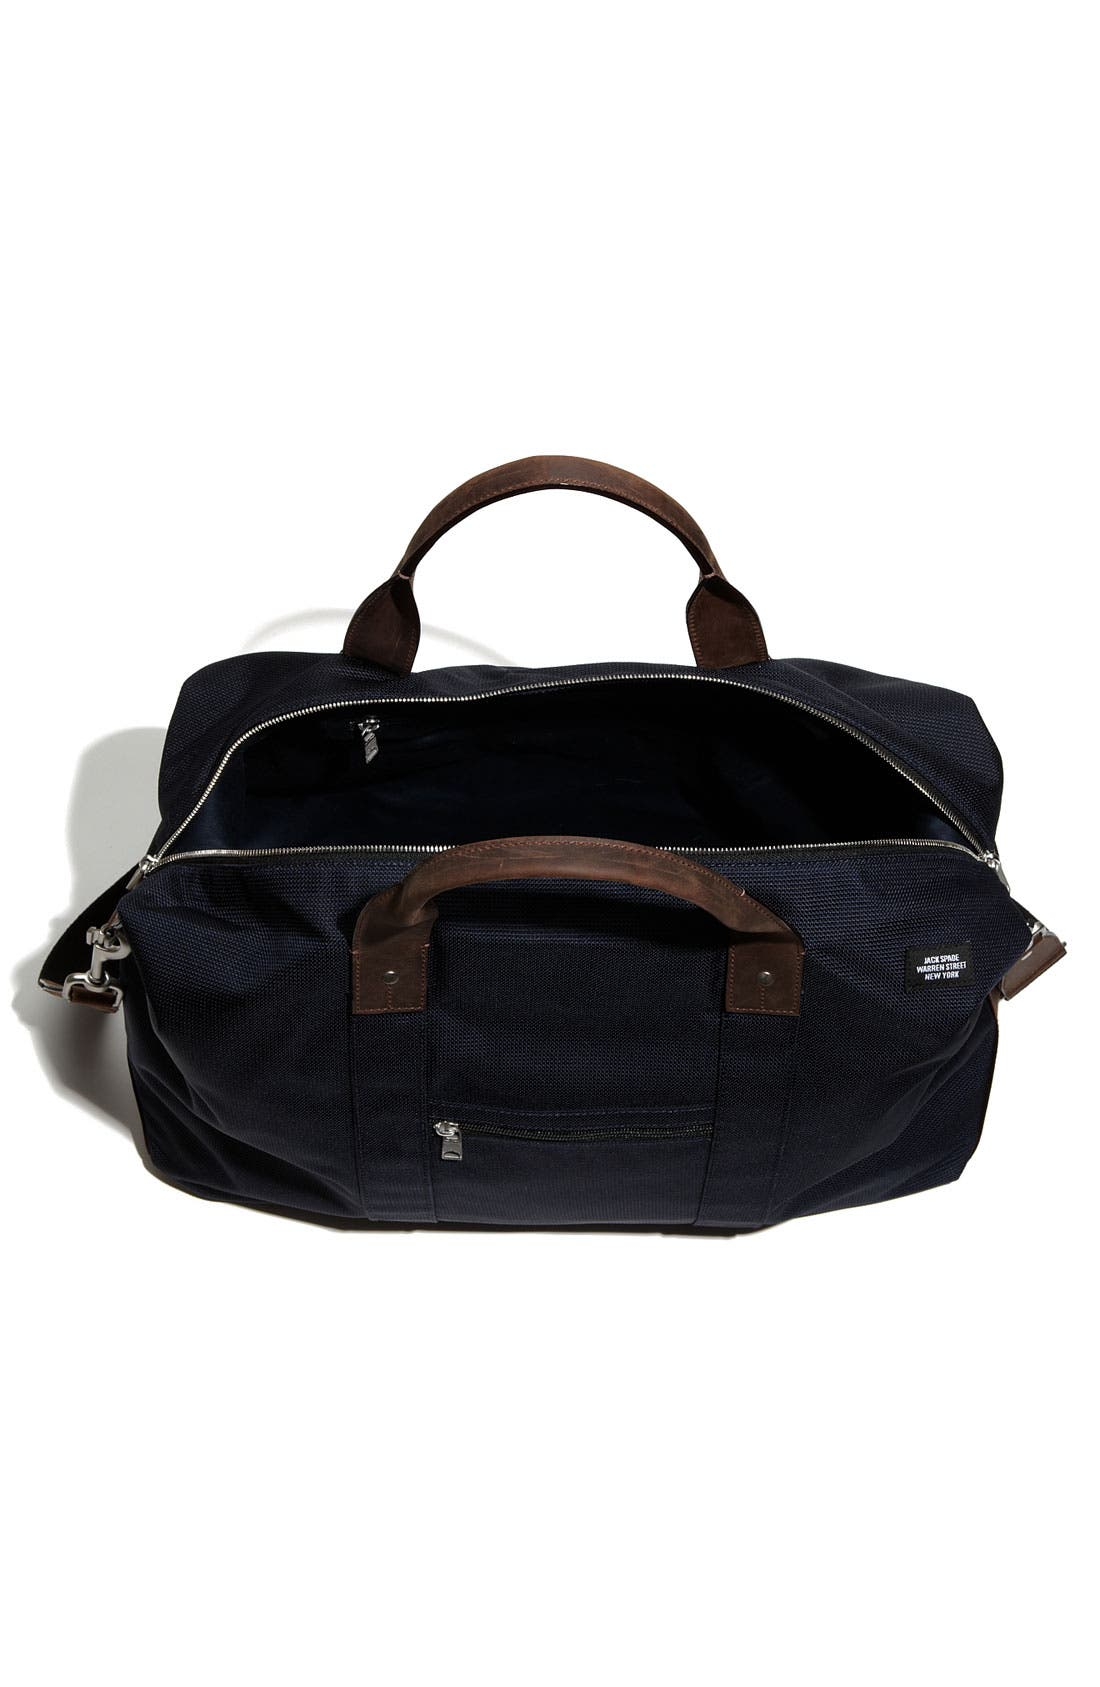 Alternate Image 3  - Jack Spade 'Wing' Nylon Duffel Bag